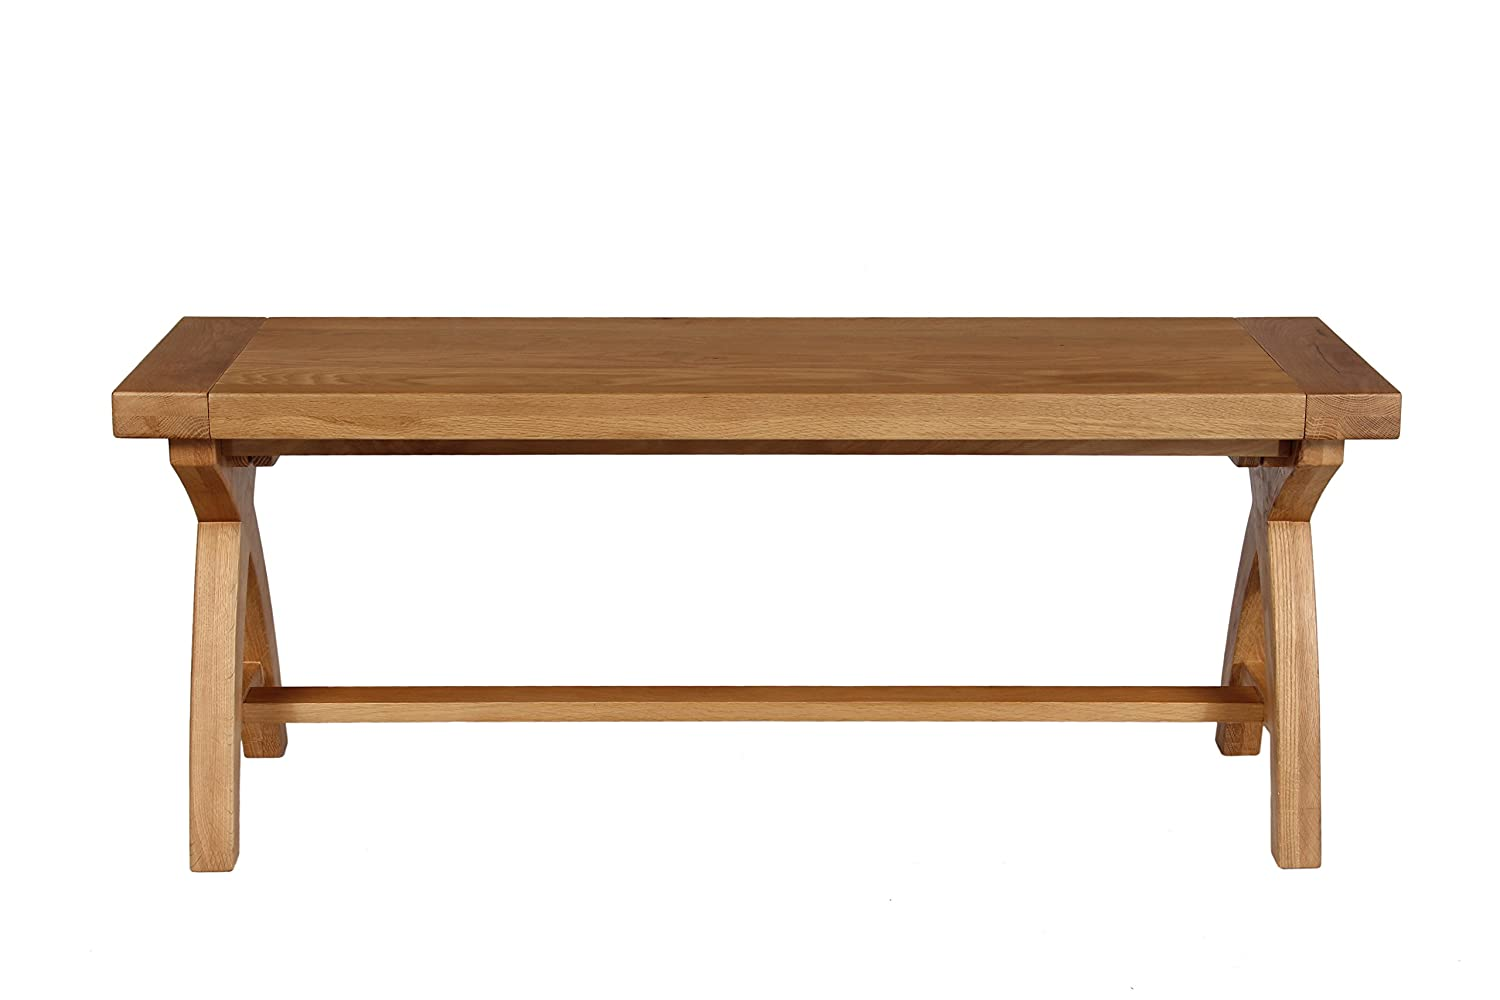 Peachy Cross Leg Country Oak Dining Bench 120Cm Amazon Co Uk Squirreltailoven Fun Painted Chair Ideas Images Squirreltailovenorg